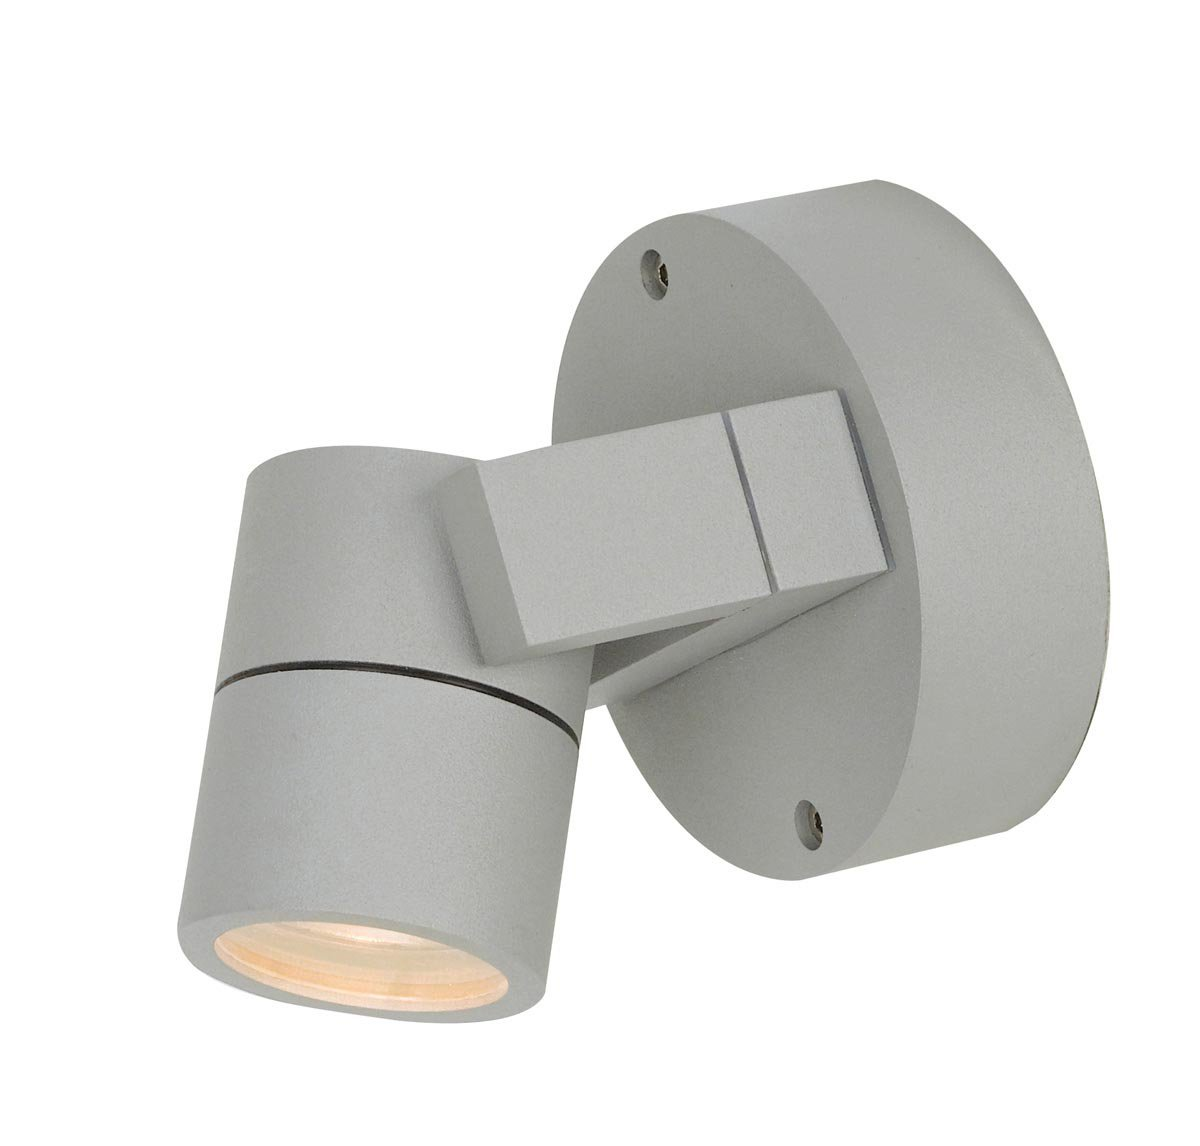 KO Marine Grade Wet Location LED Spotlight - Satin Finish - Clear Glass Shade